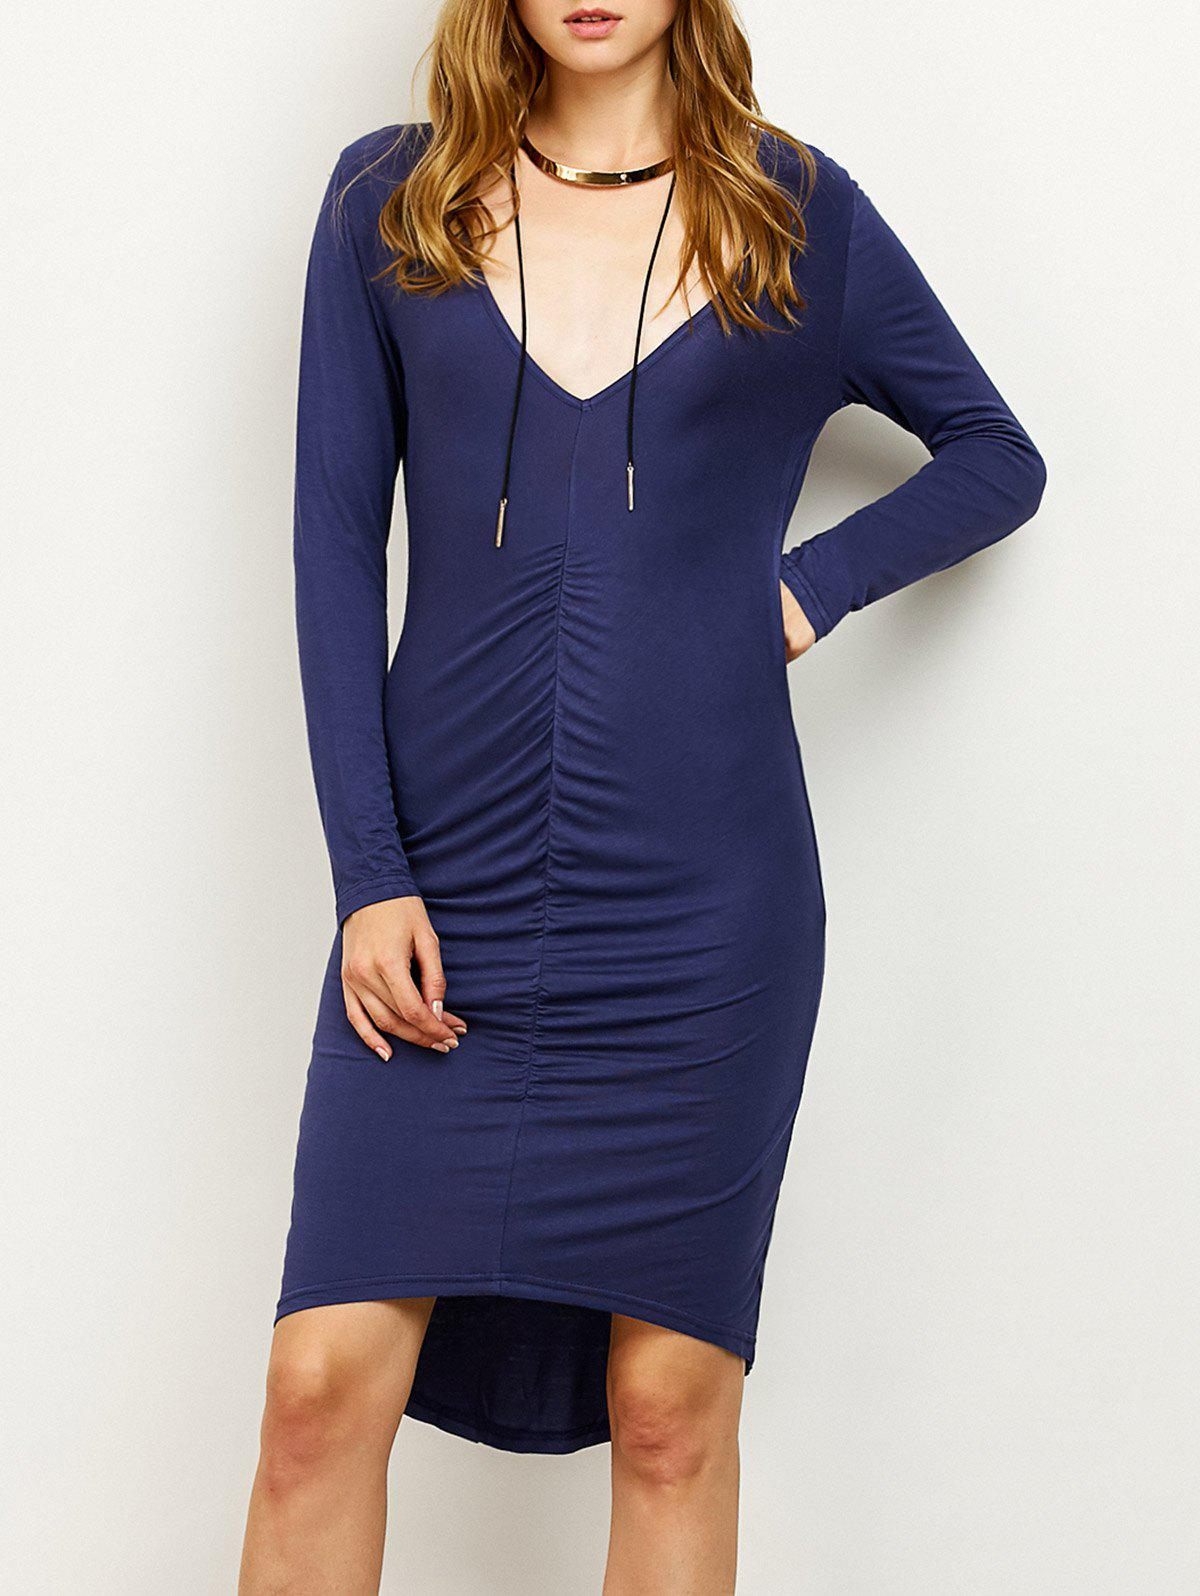 New High-Low Ruched Plunging Neck Pencil Dress